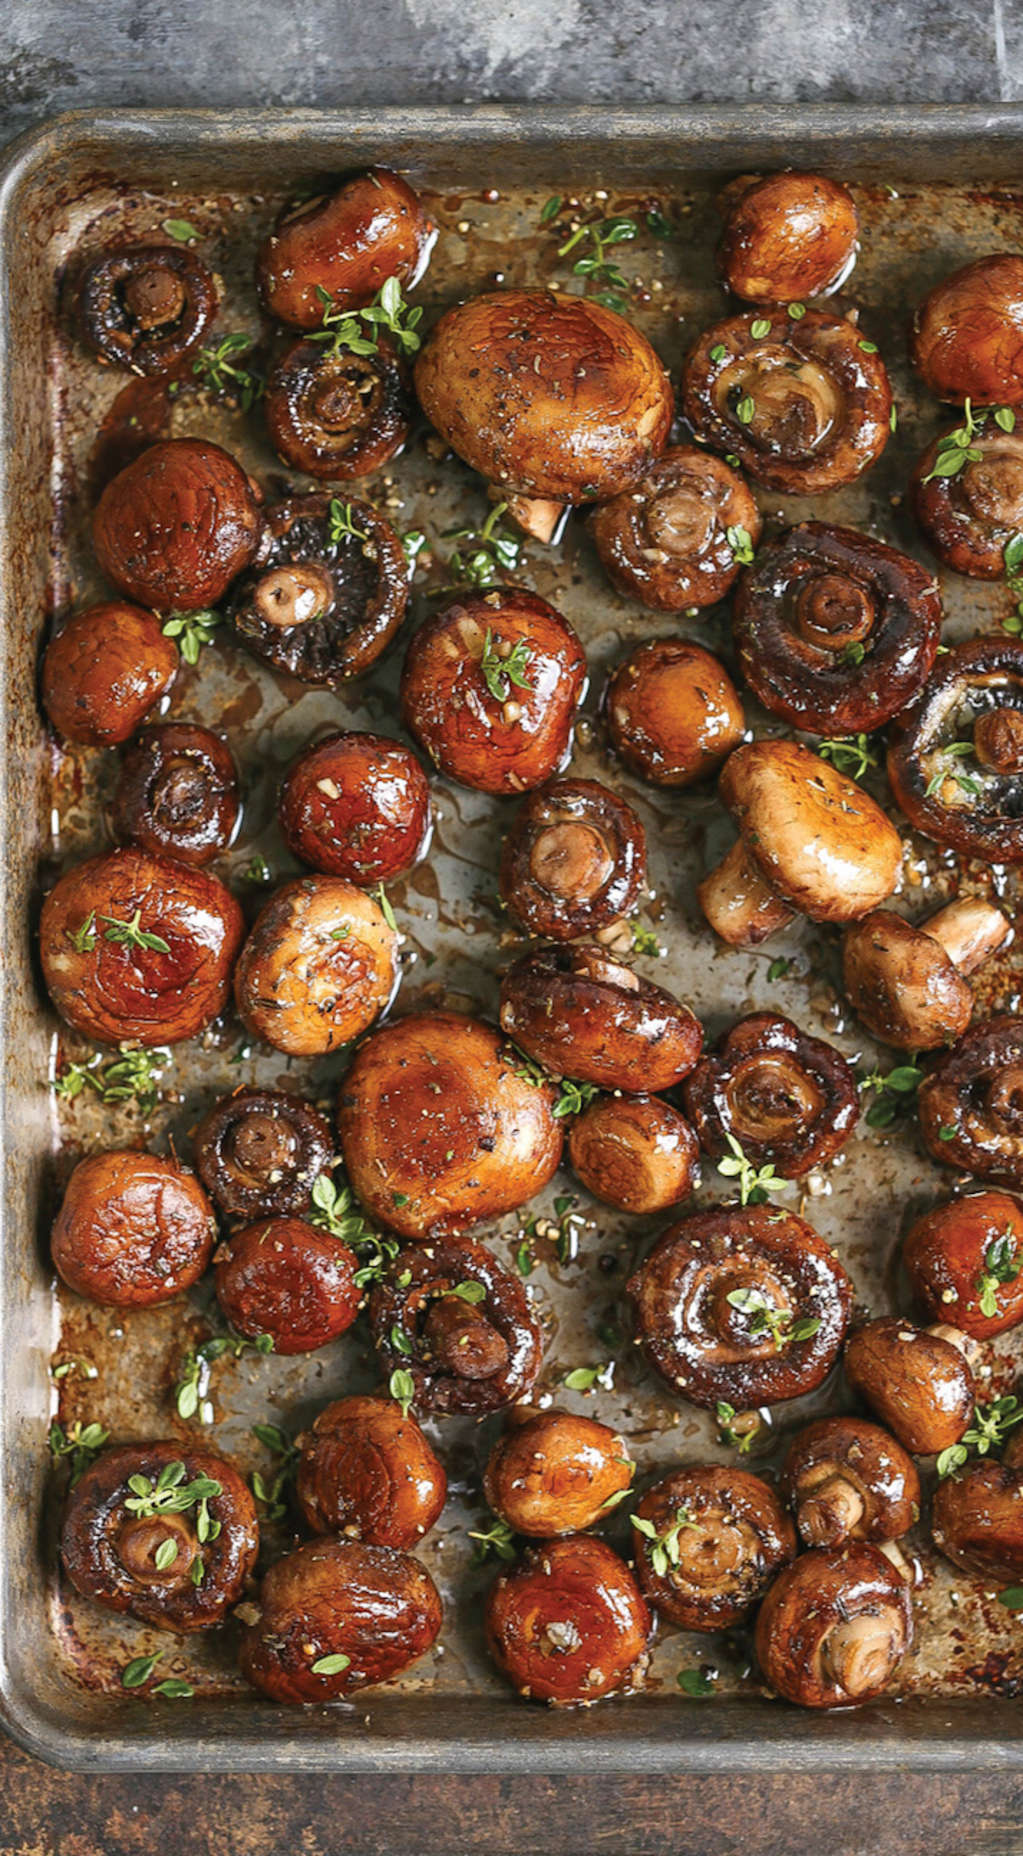 10 Popular Mushroom Recipes to Make Right Now